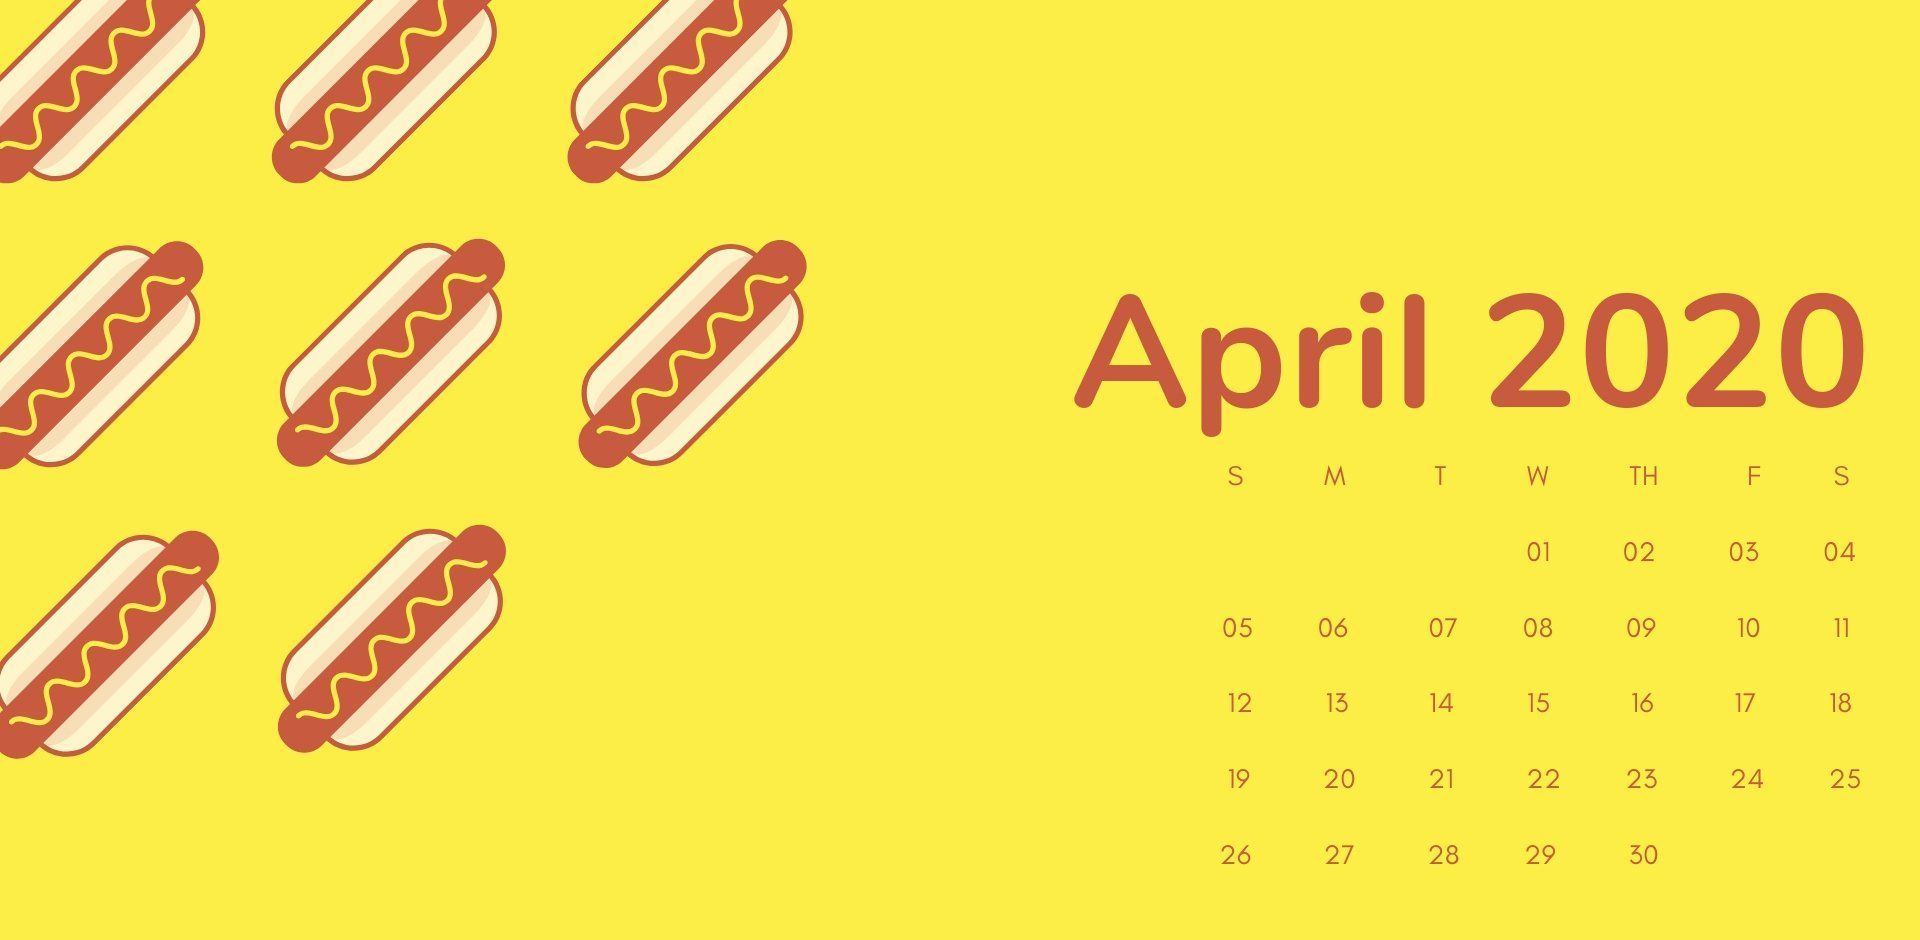 April 2020 Calendar Wallpaper